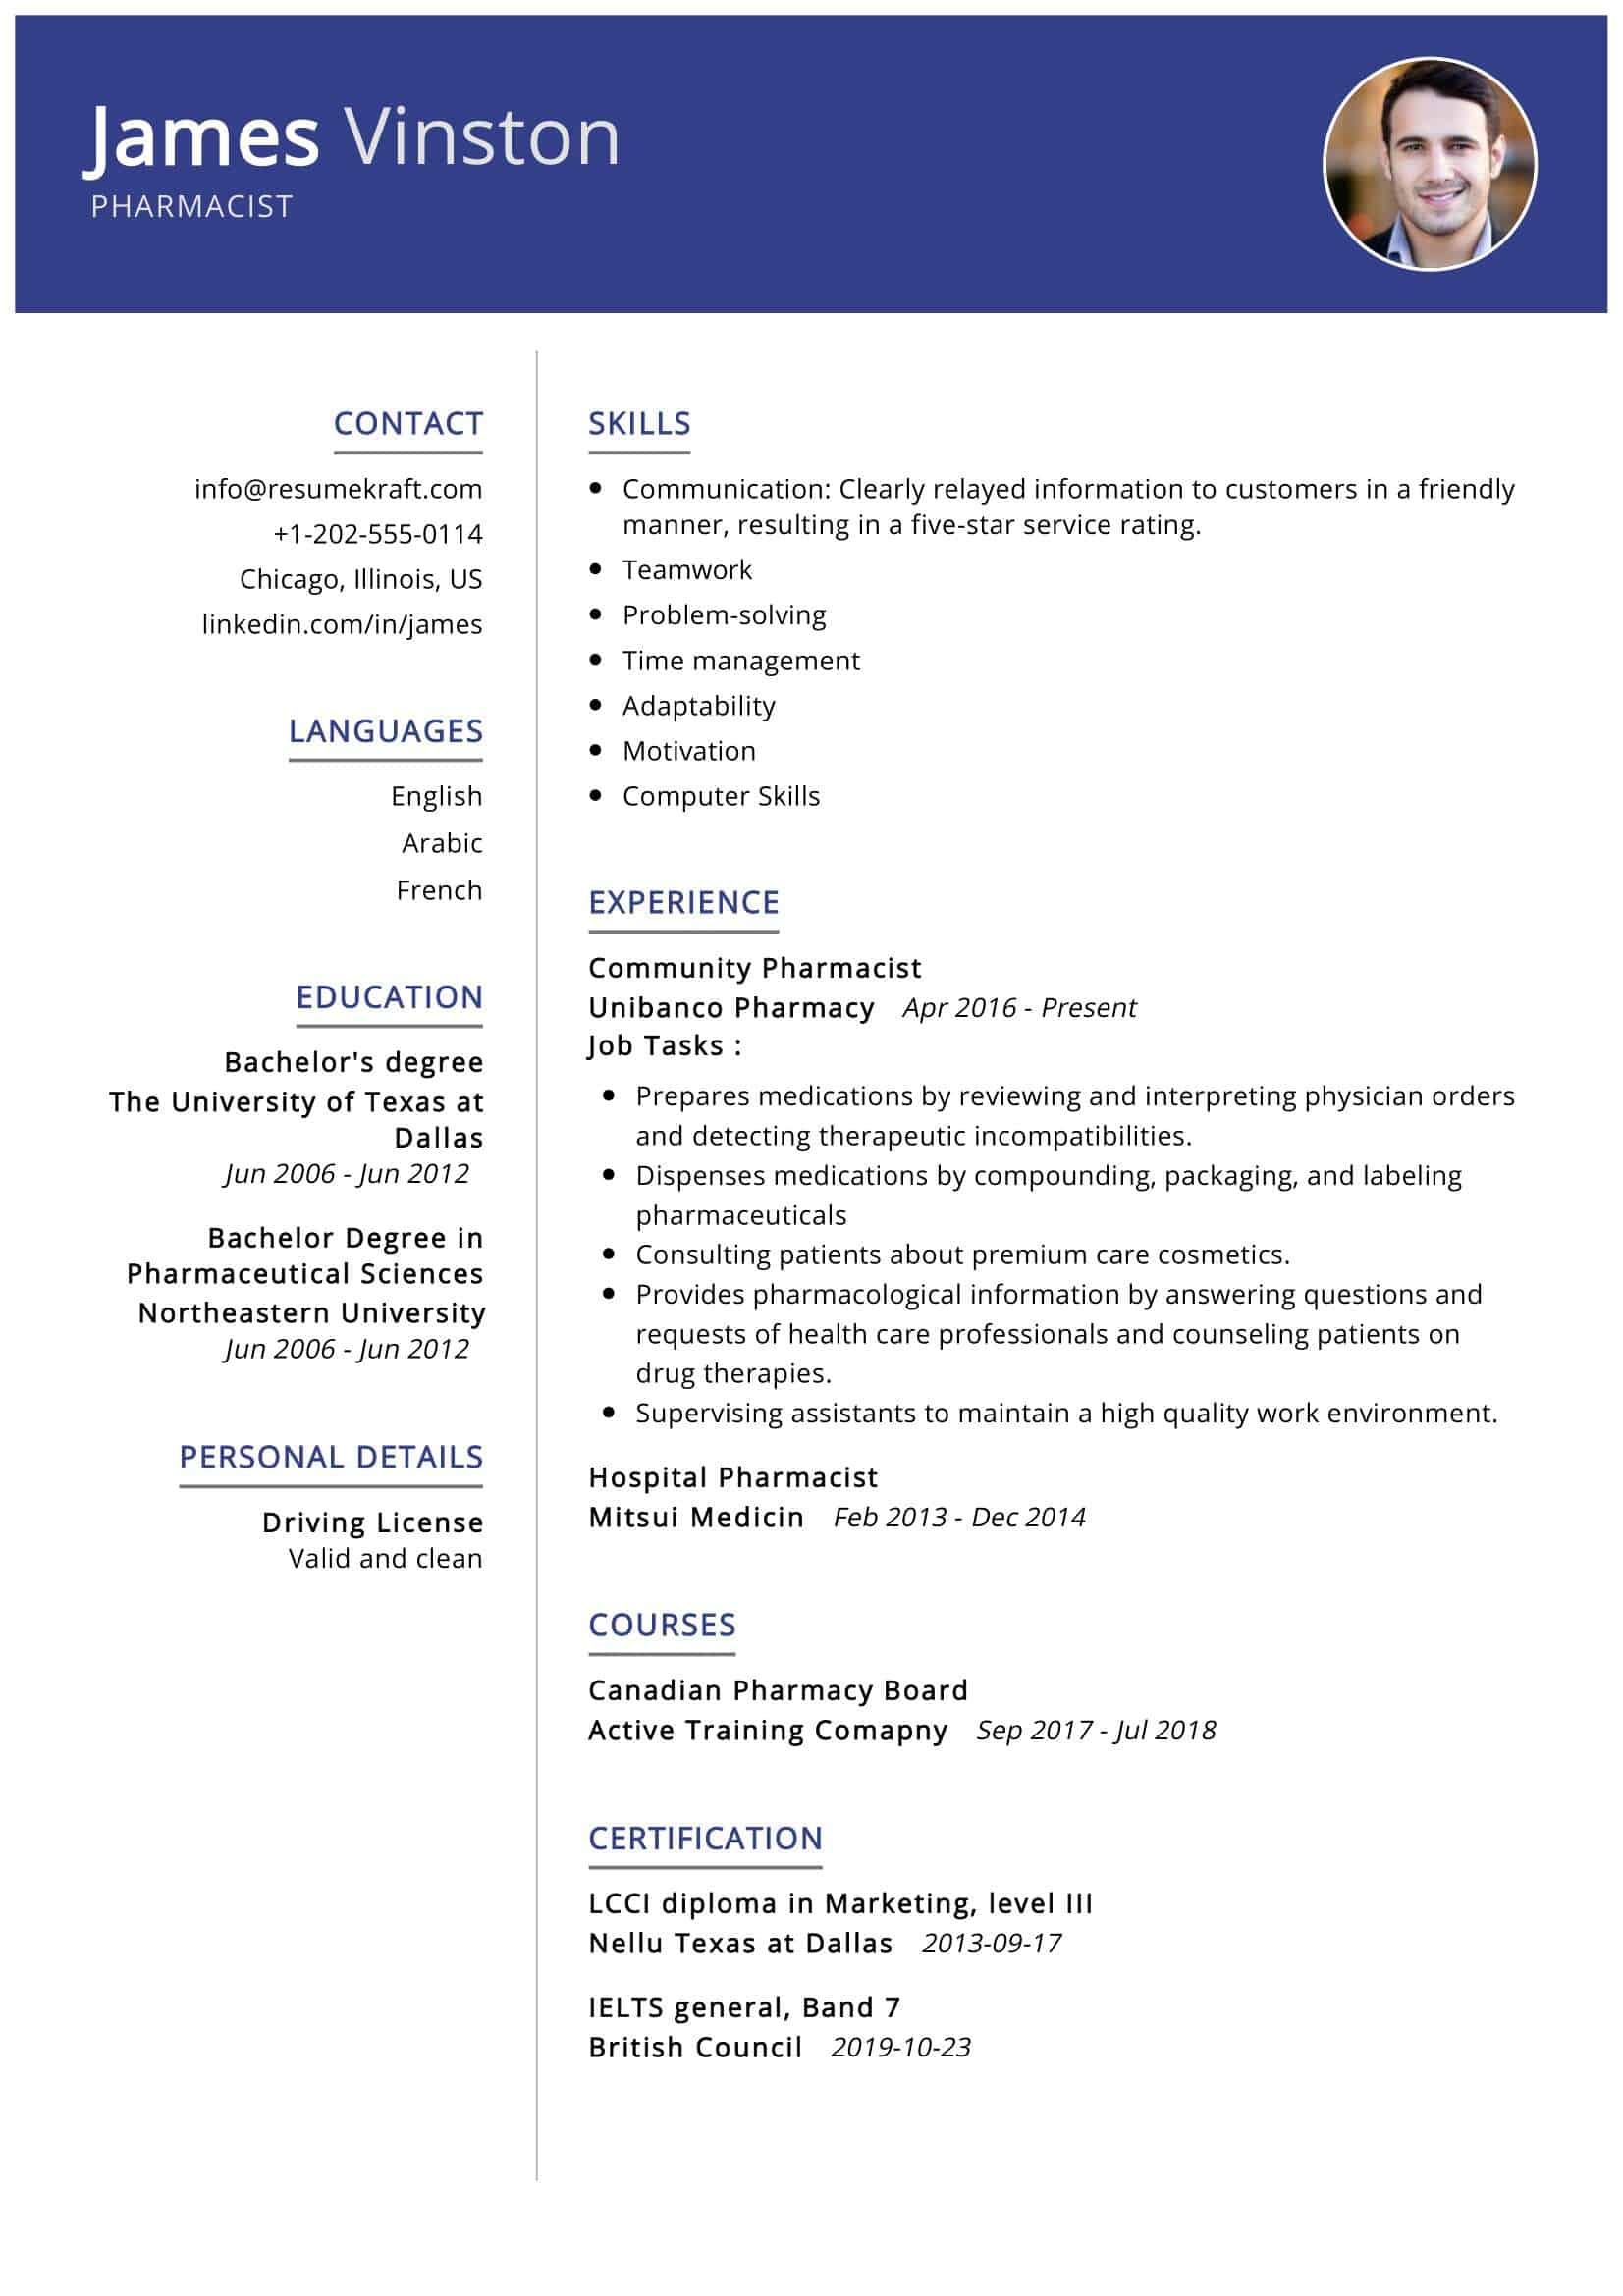 pharmacist resume sample writing tips resumekraft professional writers deakin talent Resume Professional Pharmacist Resume Writers